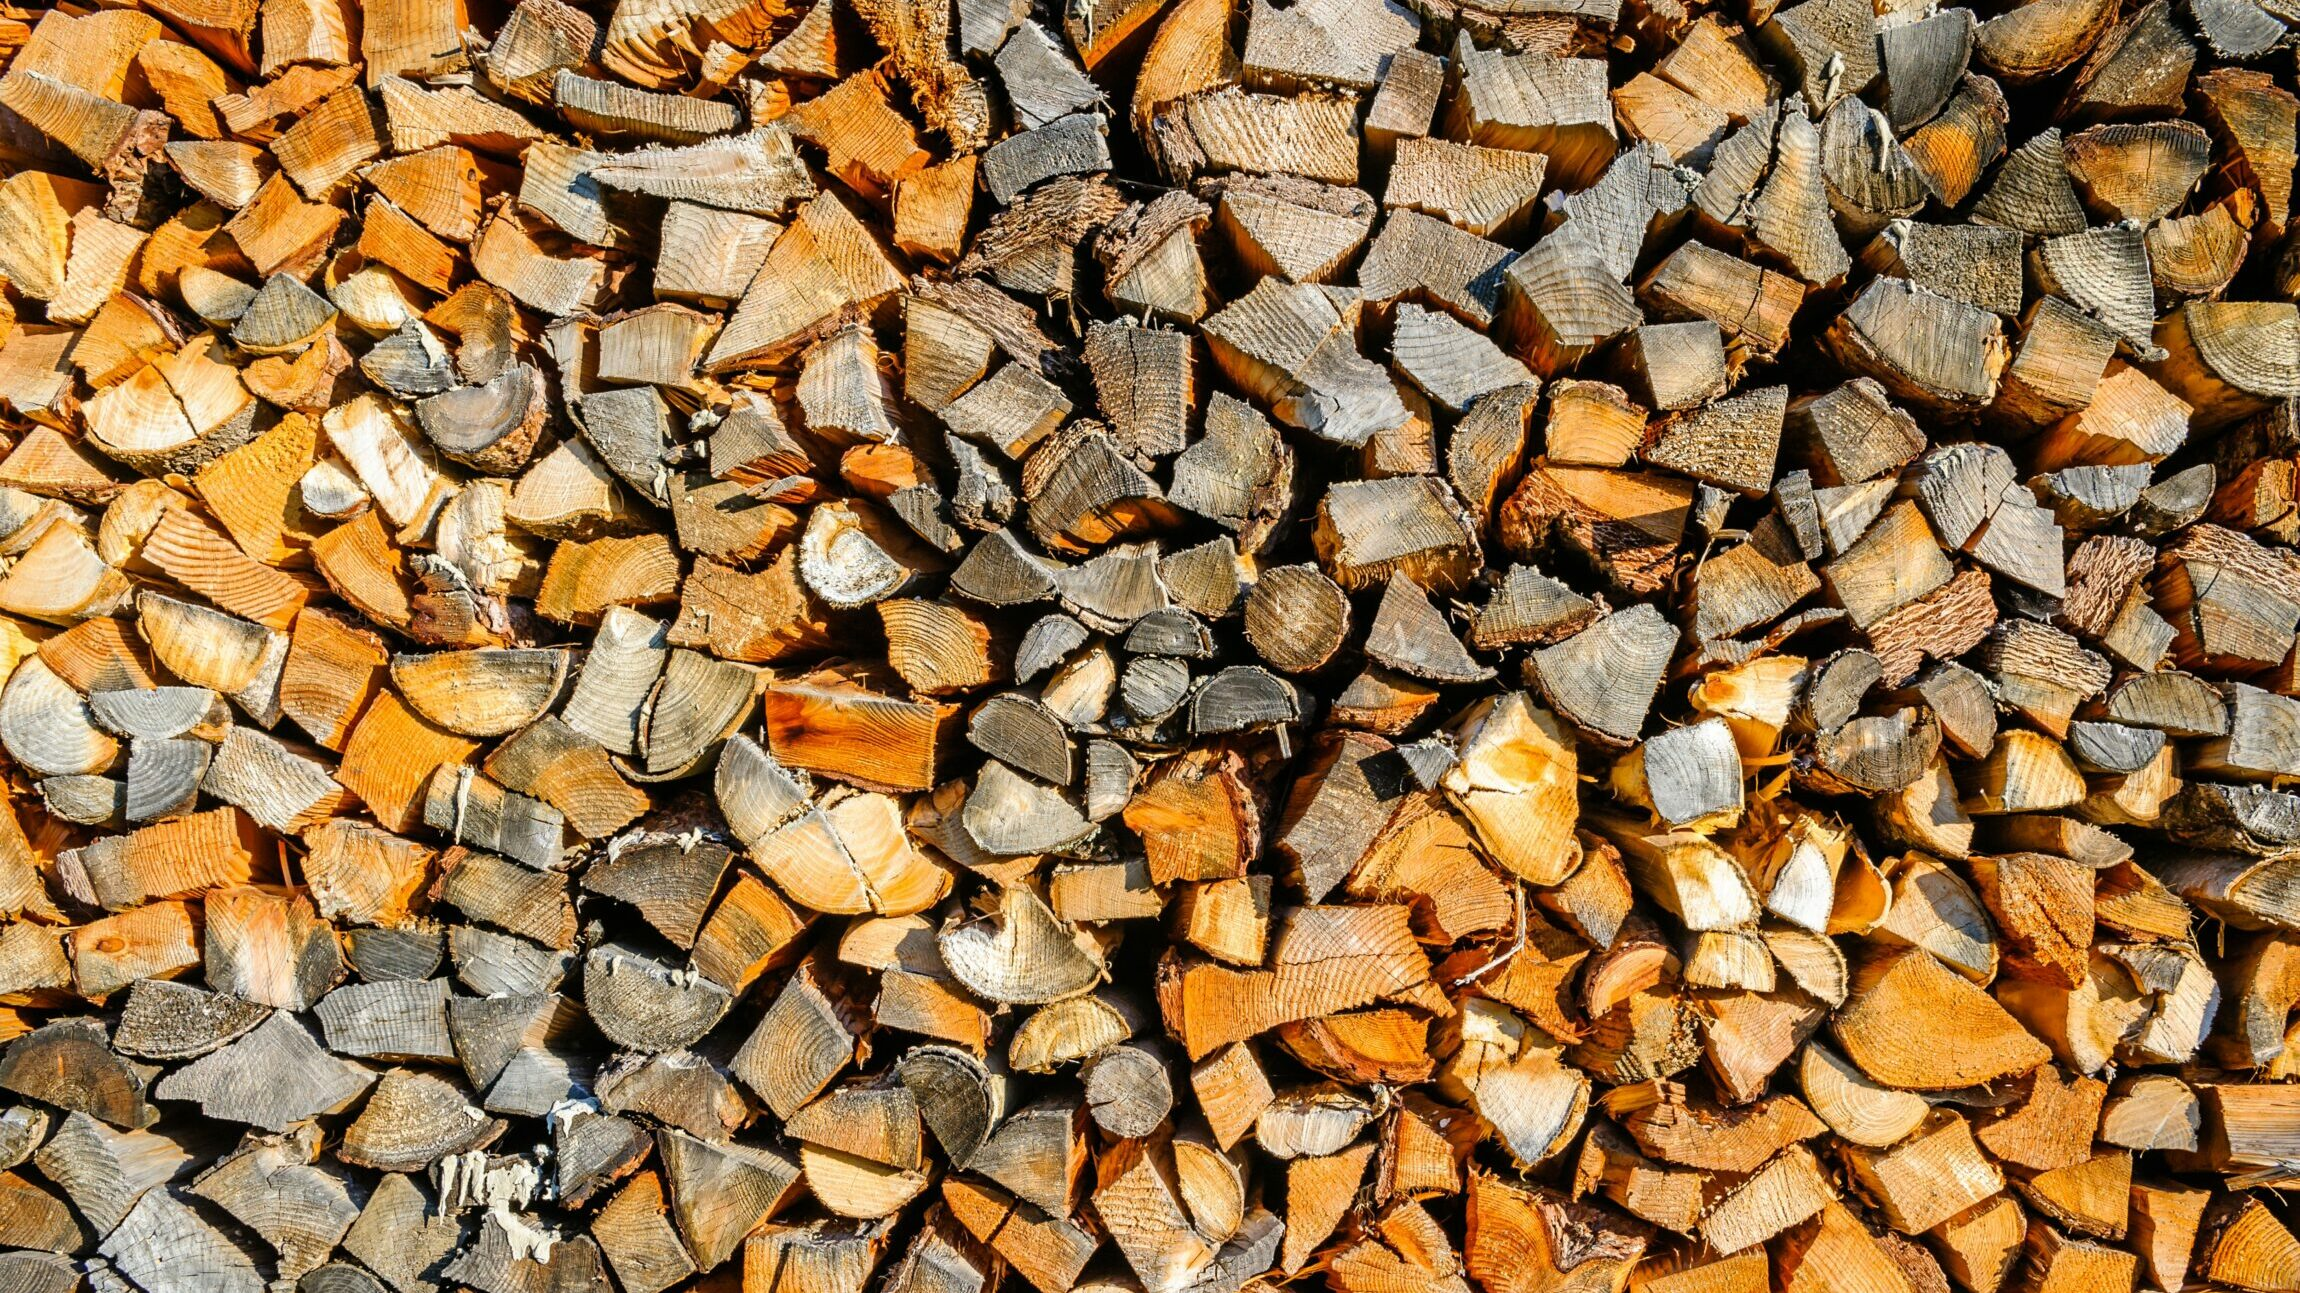 Self-ignition in biomass storage – how to detect before a fire occurs